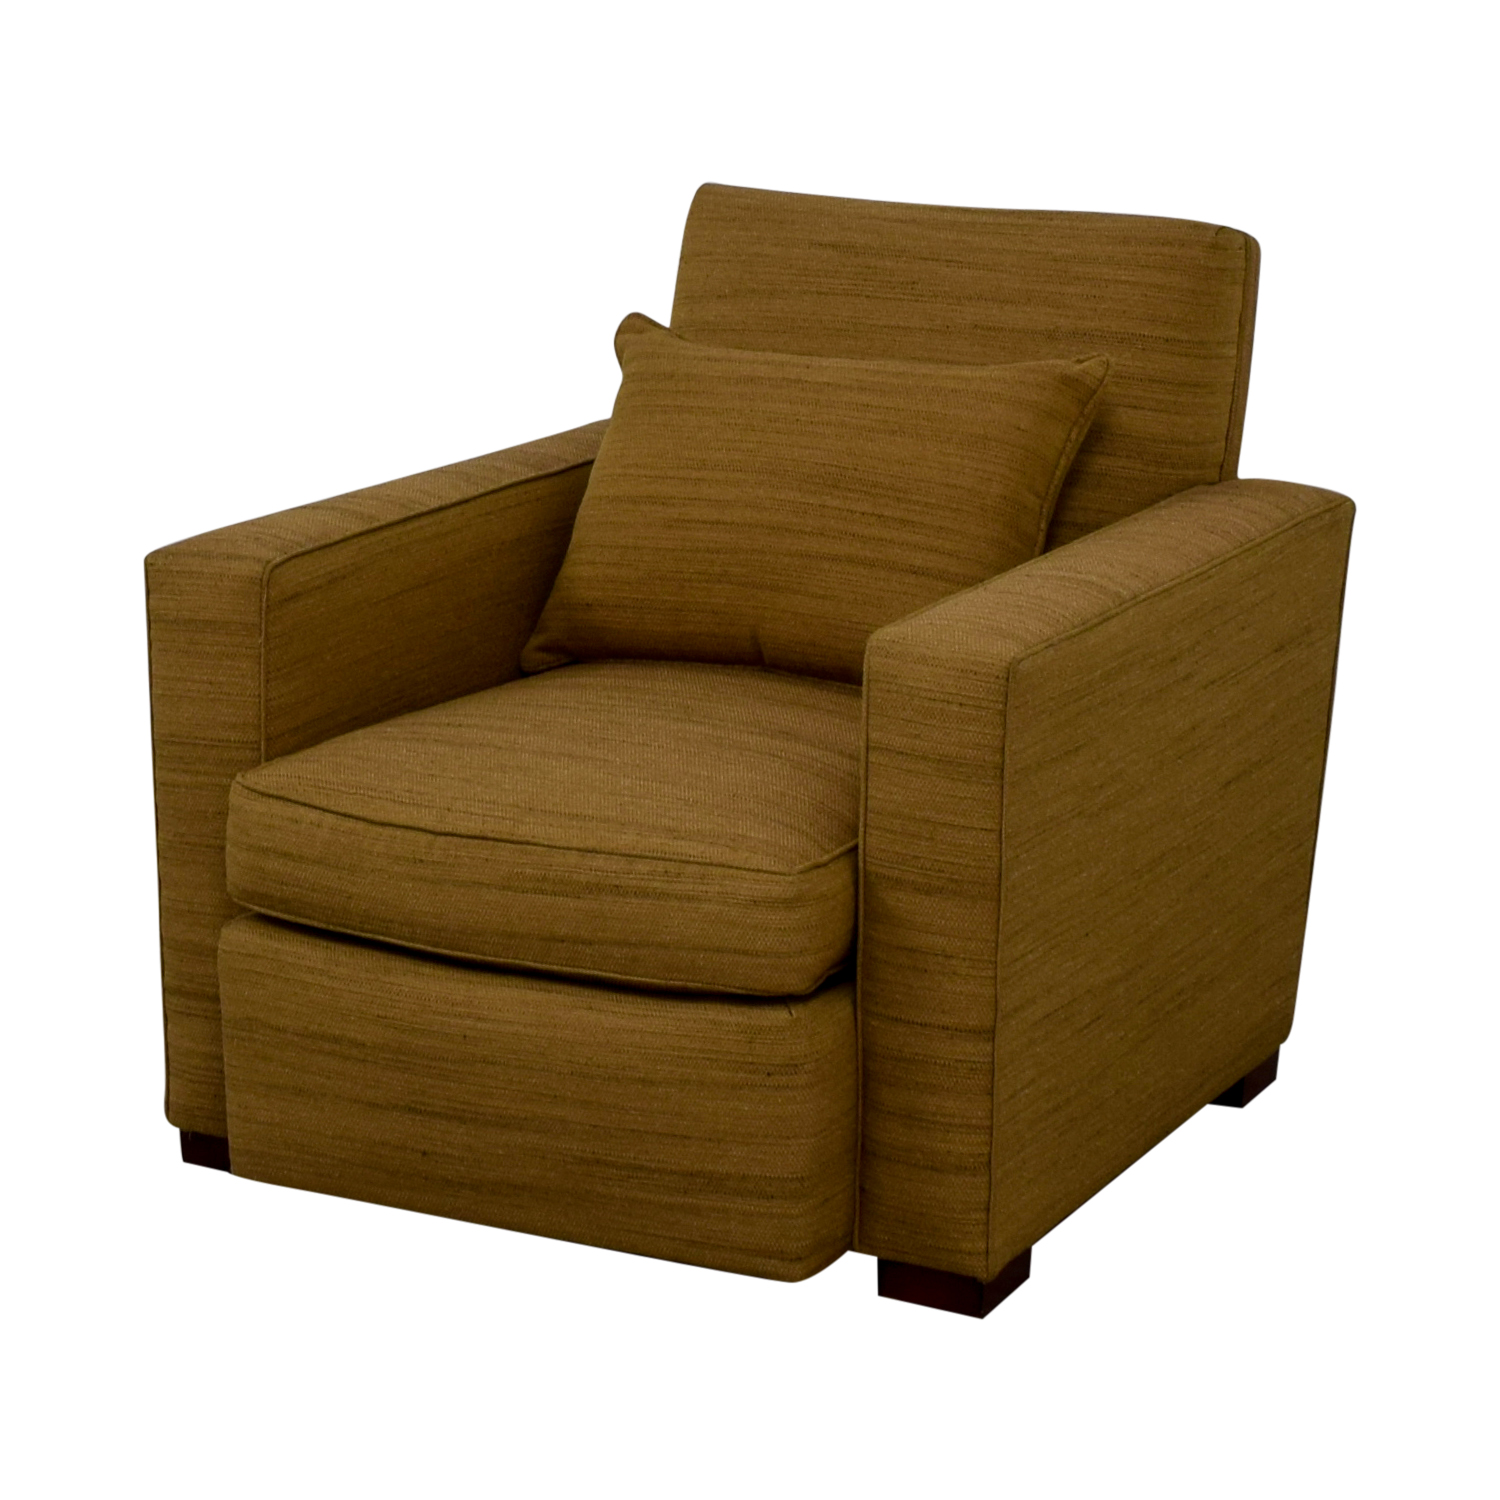 Sensational 90 Off Hickory Chair Hickory Chair Classic Modern Club Chair Chairs Gamerscity Chair Design For Home Gamerscityorg